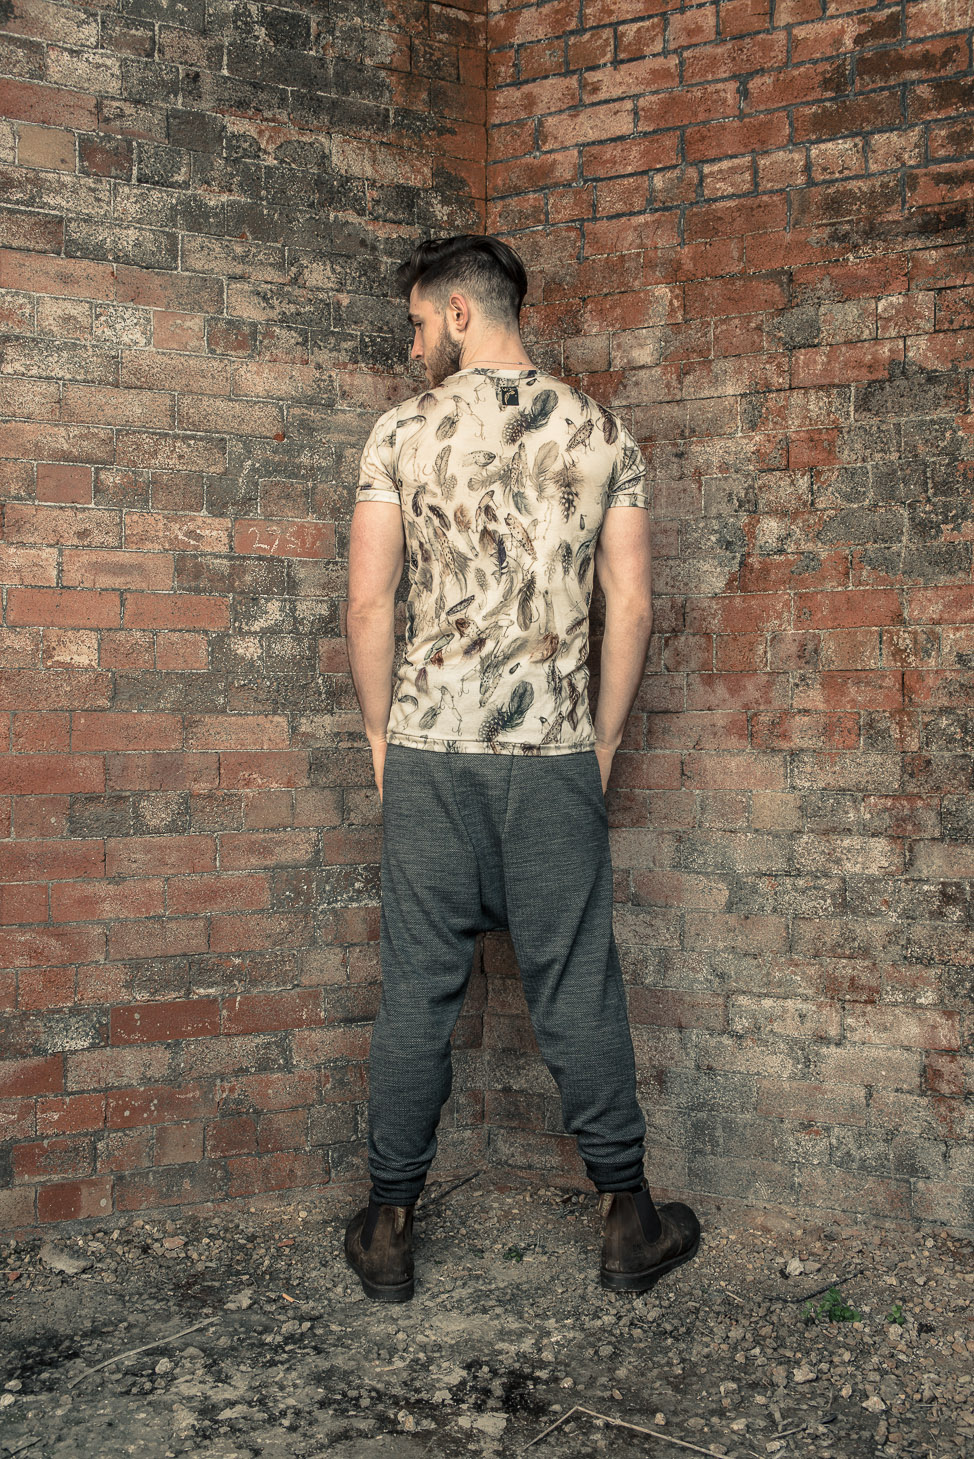 zaramia-ava-zaramiaava-leeds-fashion-designer-ethical-sustainable-tailored-minimalist-fitted-versatile-drape-koji-grey-tshirt-top-hareem-trousers-black-grey-texture-styling-menswear-model-24